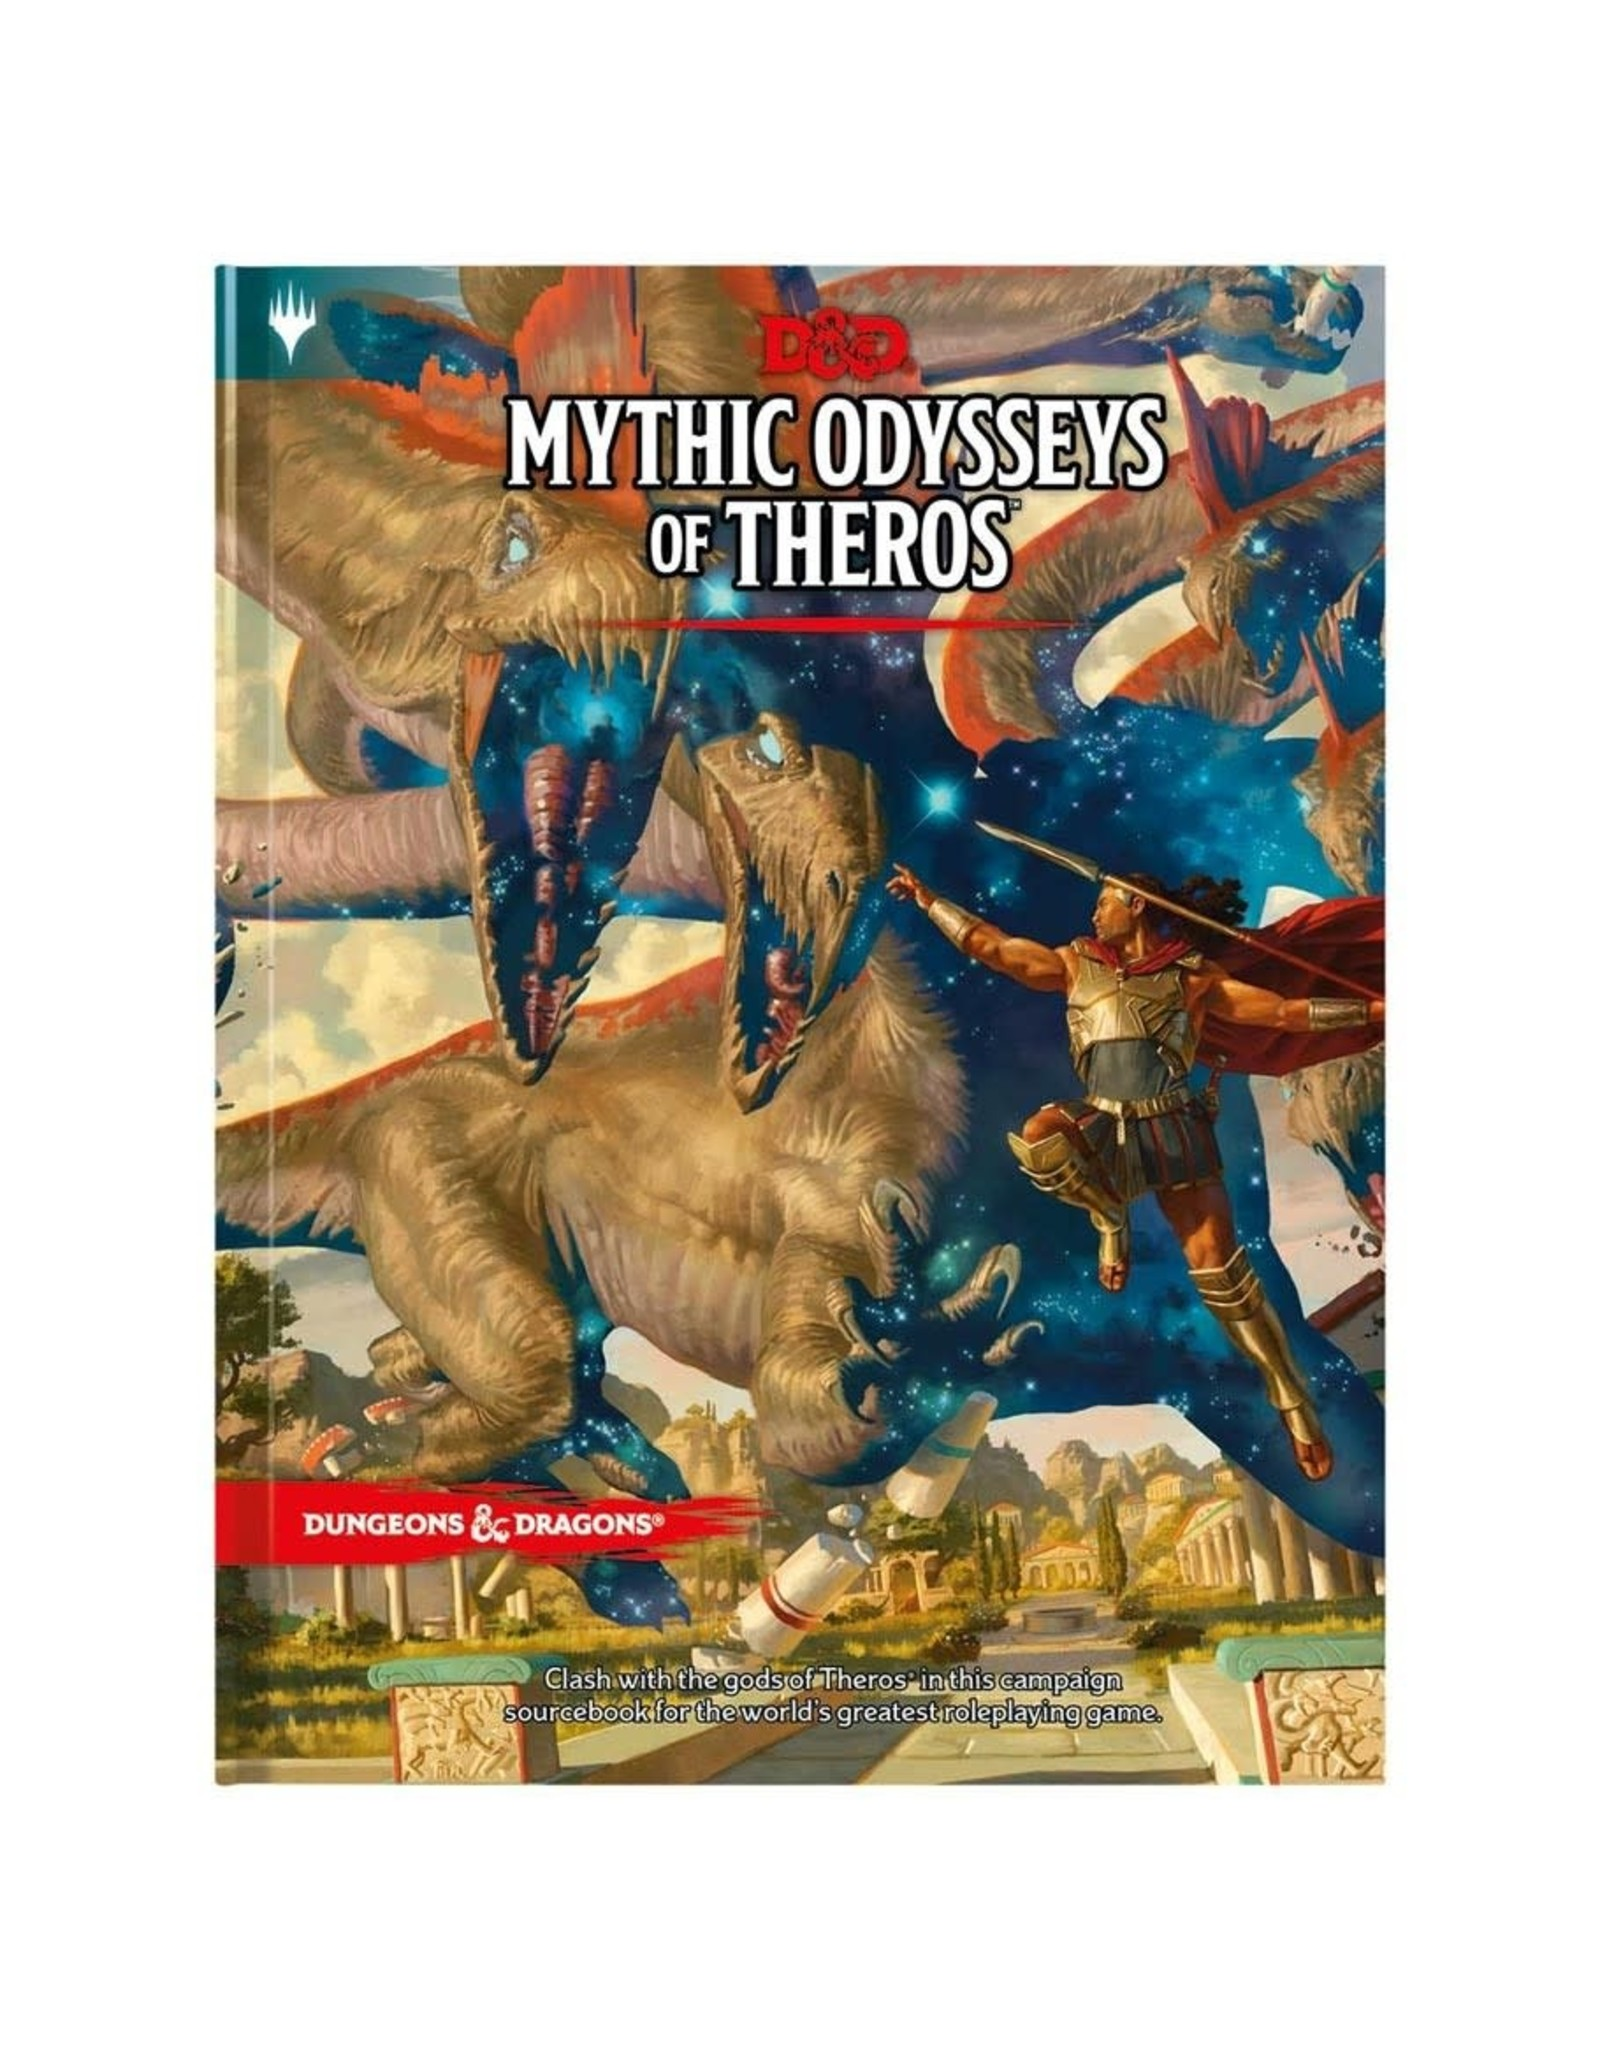 Mythic Odysseys of Theros - PREORDER, AVAILABLE JULY 21, 2020